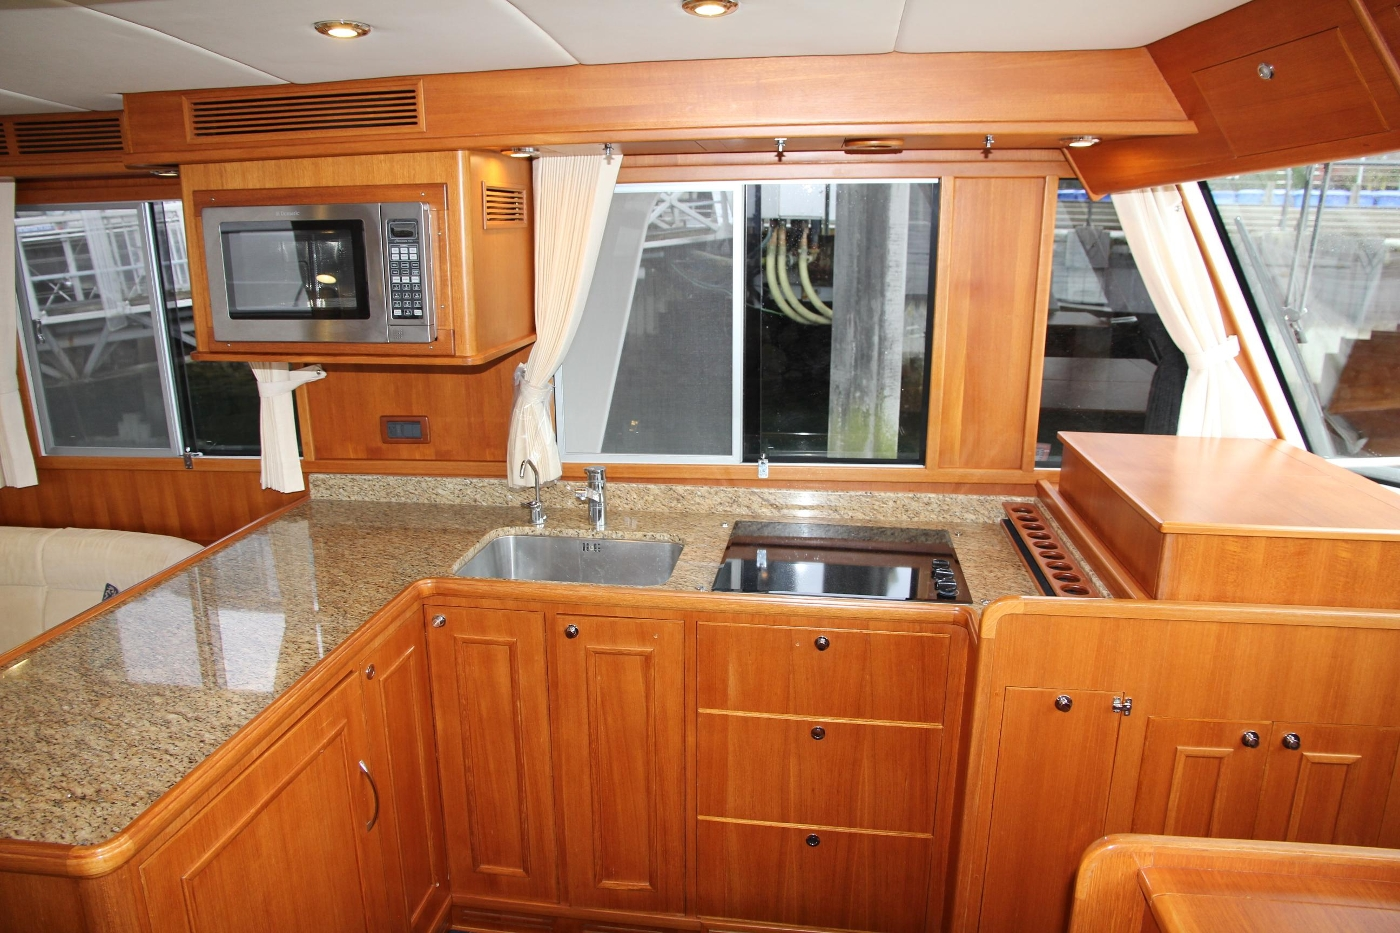 2009 Grand Banks 47 Europa, Portside Galley